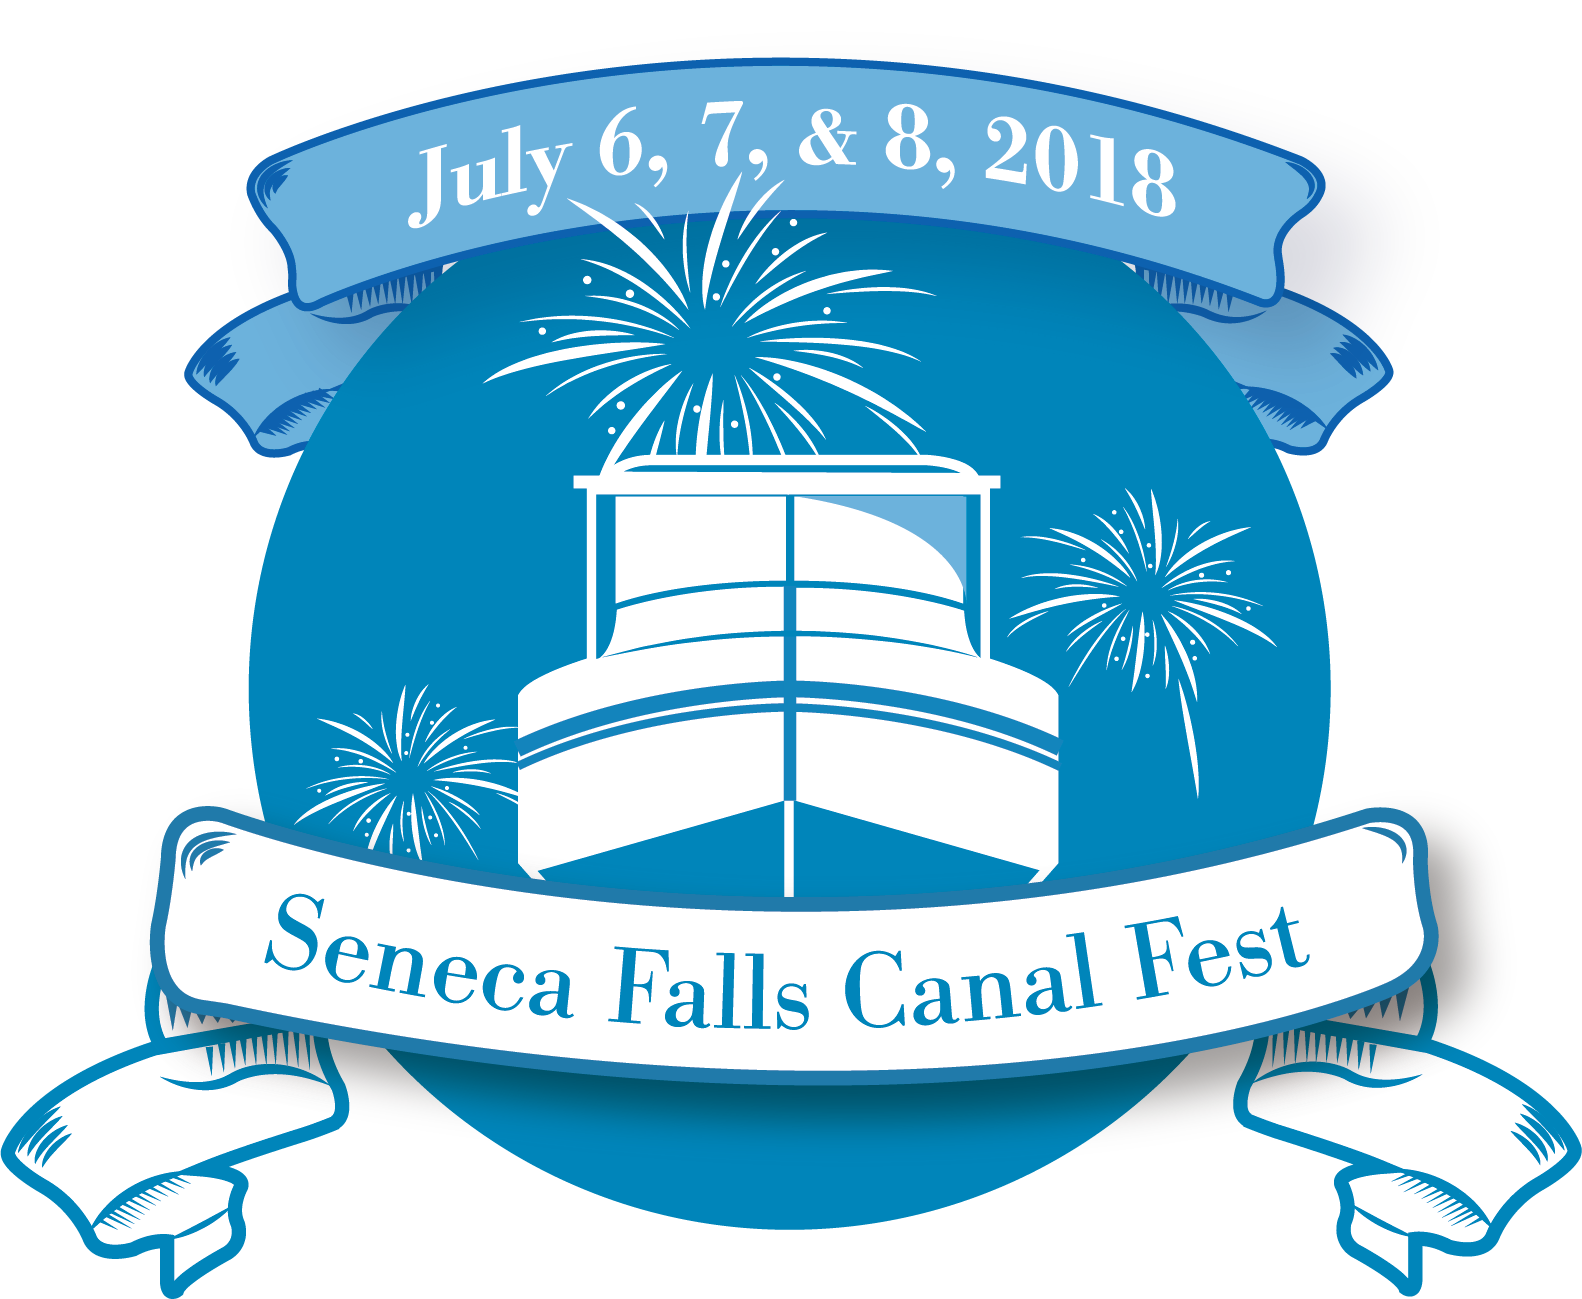 Organizations Invited to Participate in SF Canal Fest